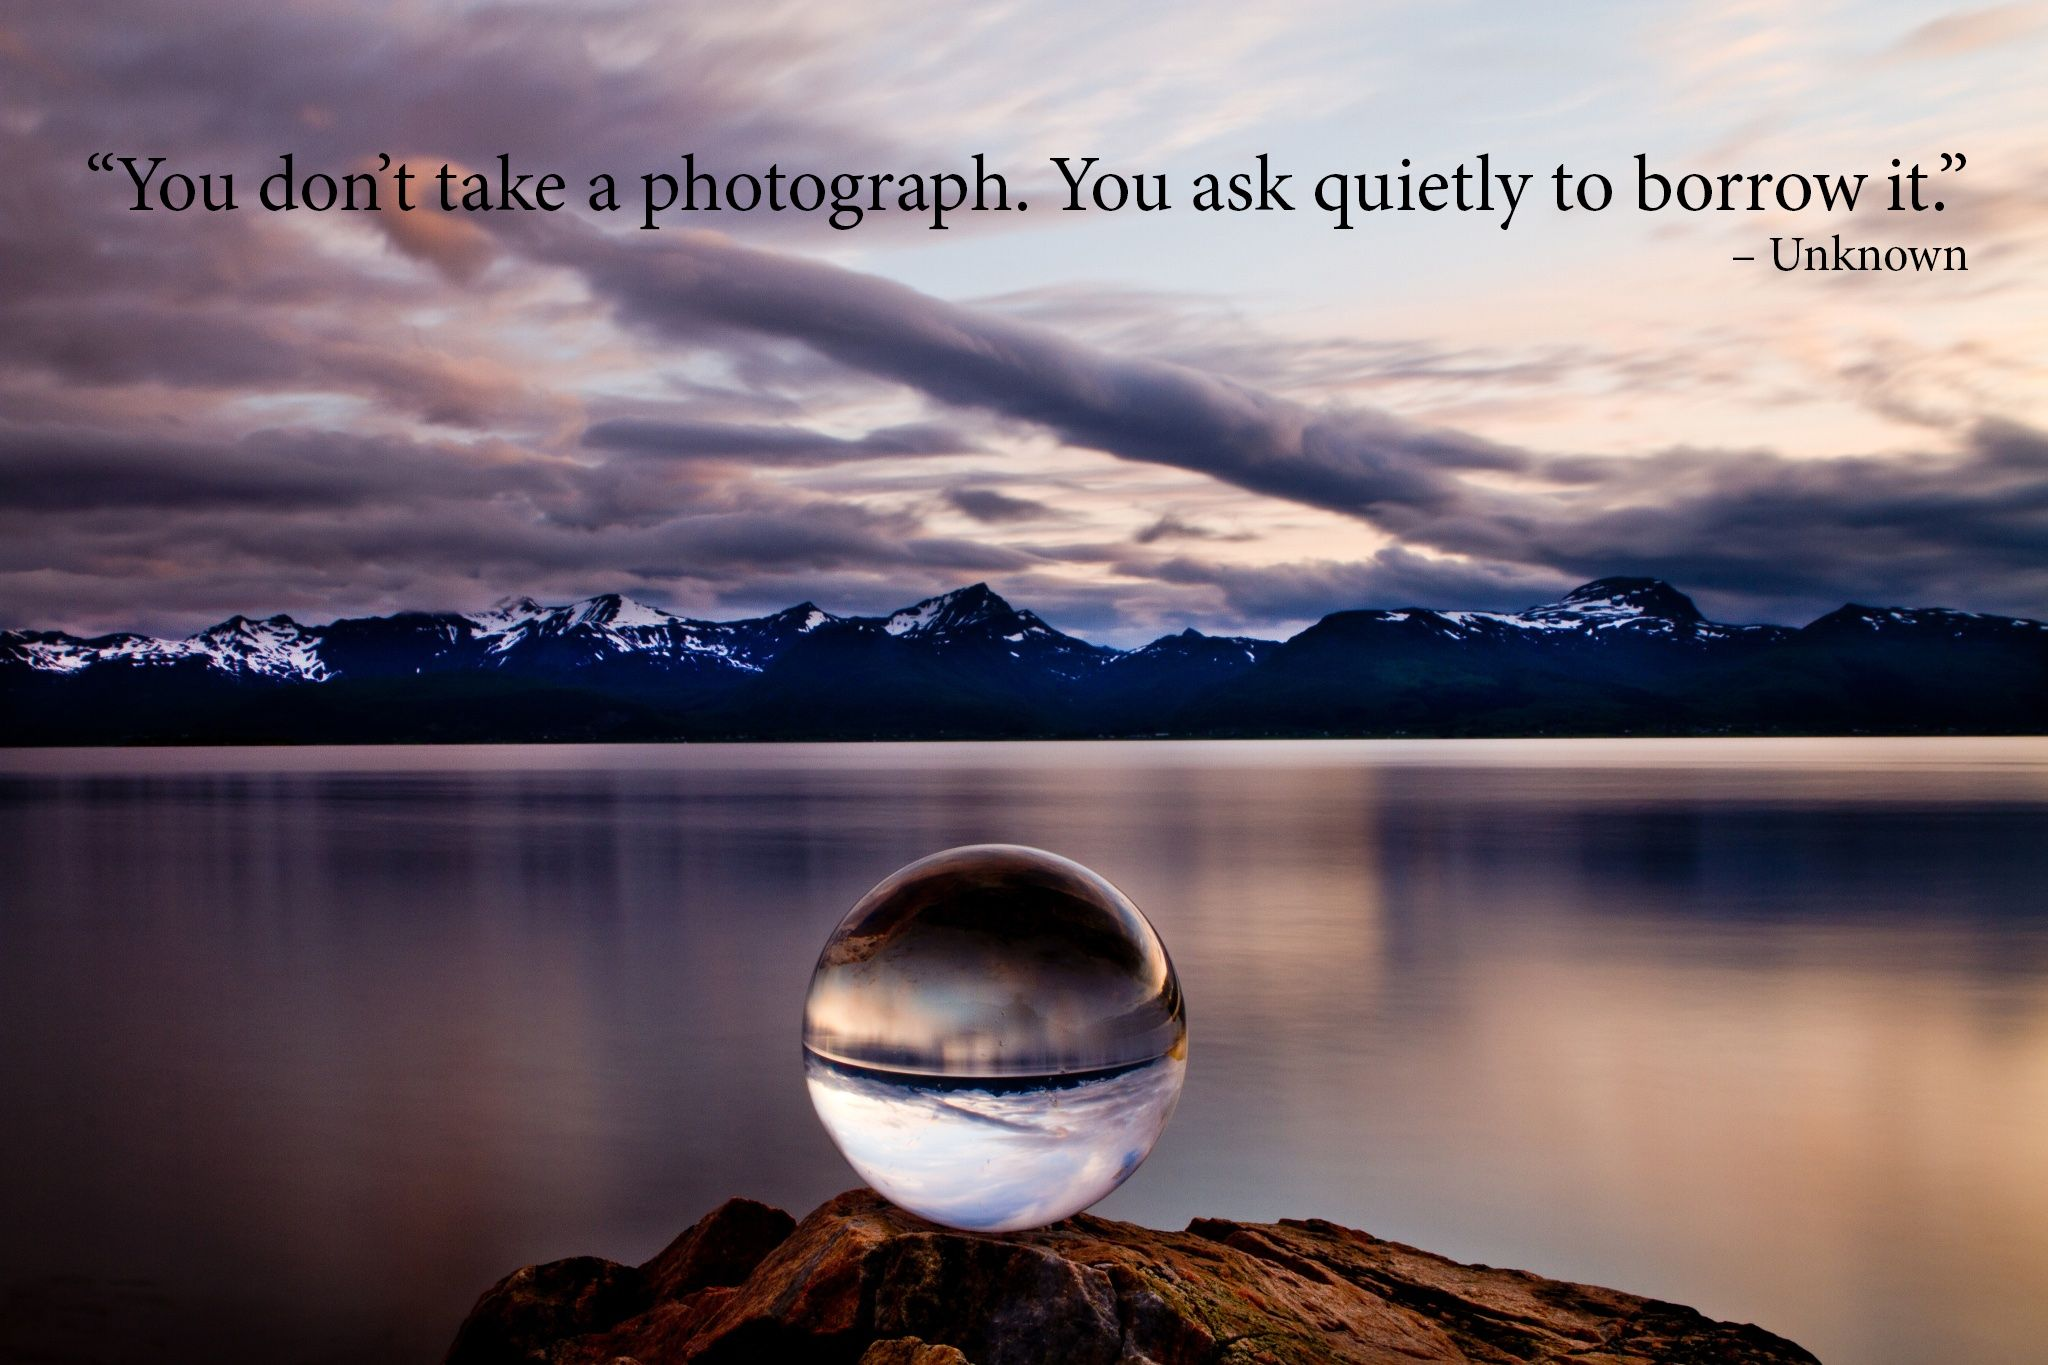 Inspirational Photography Quotes 40 Inspirational Photography Quotes… And 10 Funny Ones